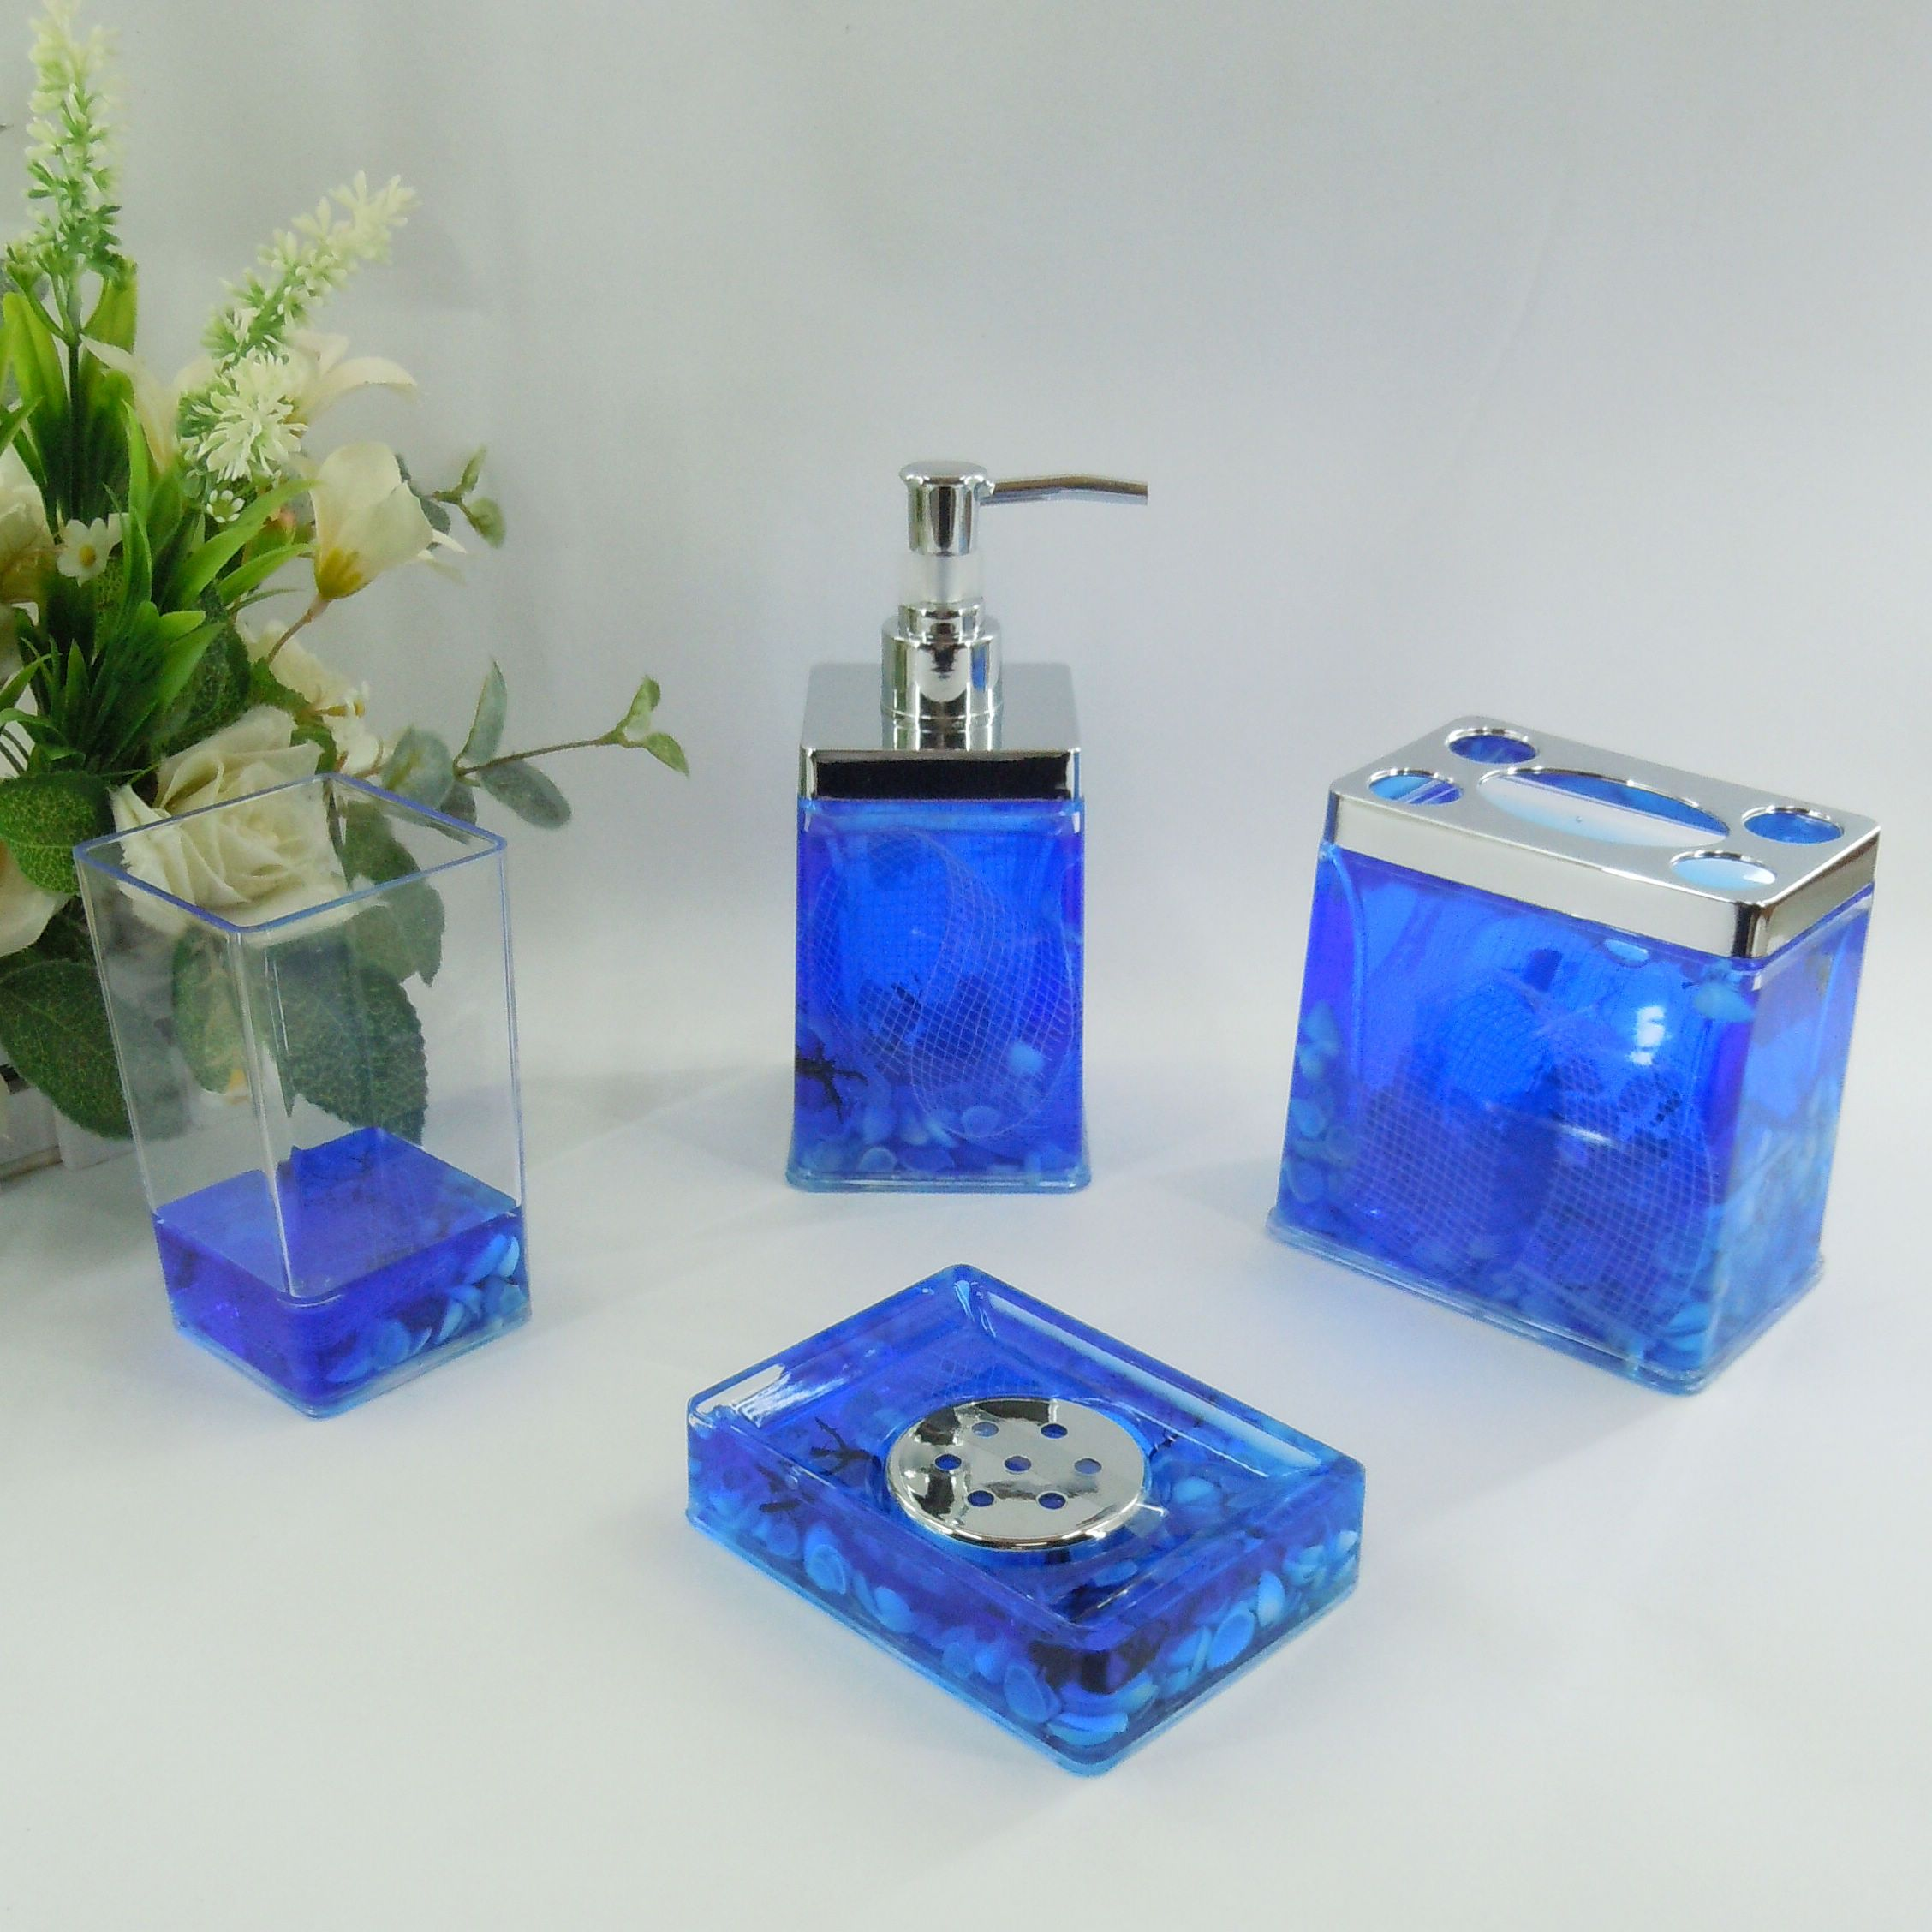 bathroom decor sets.  19 99 Blue Sea Conch Acrylic Bath Accessory Sets H4005 Wholesale Faucet